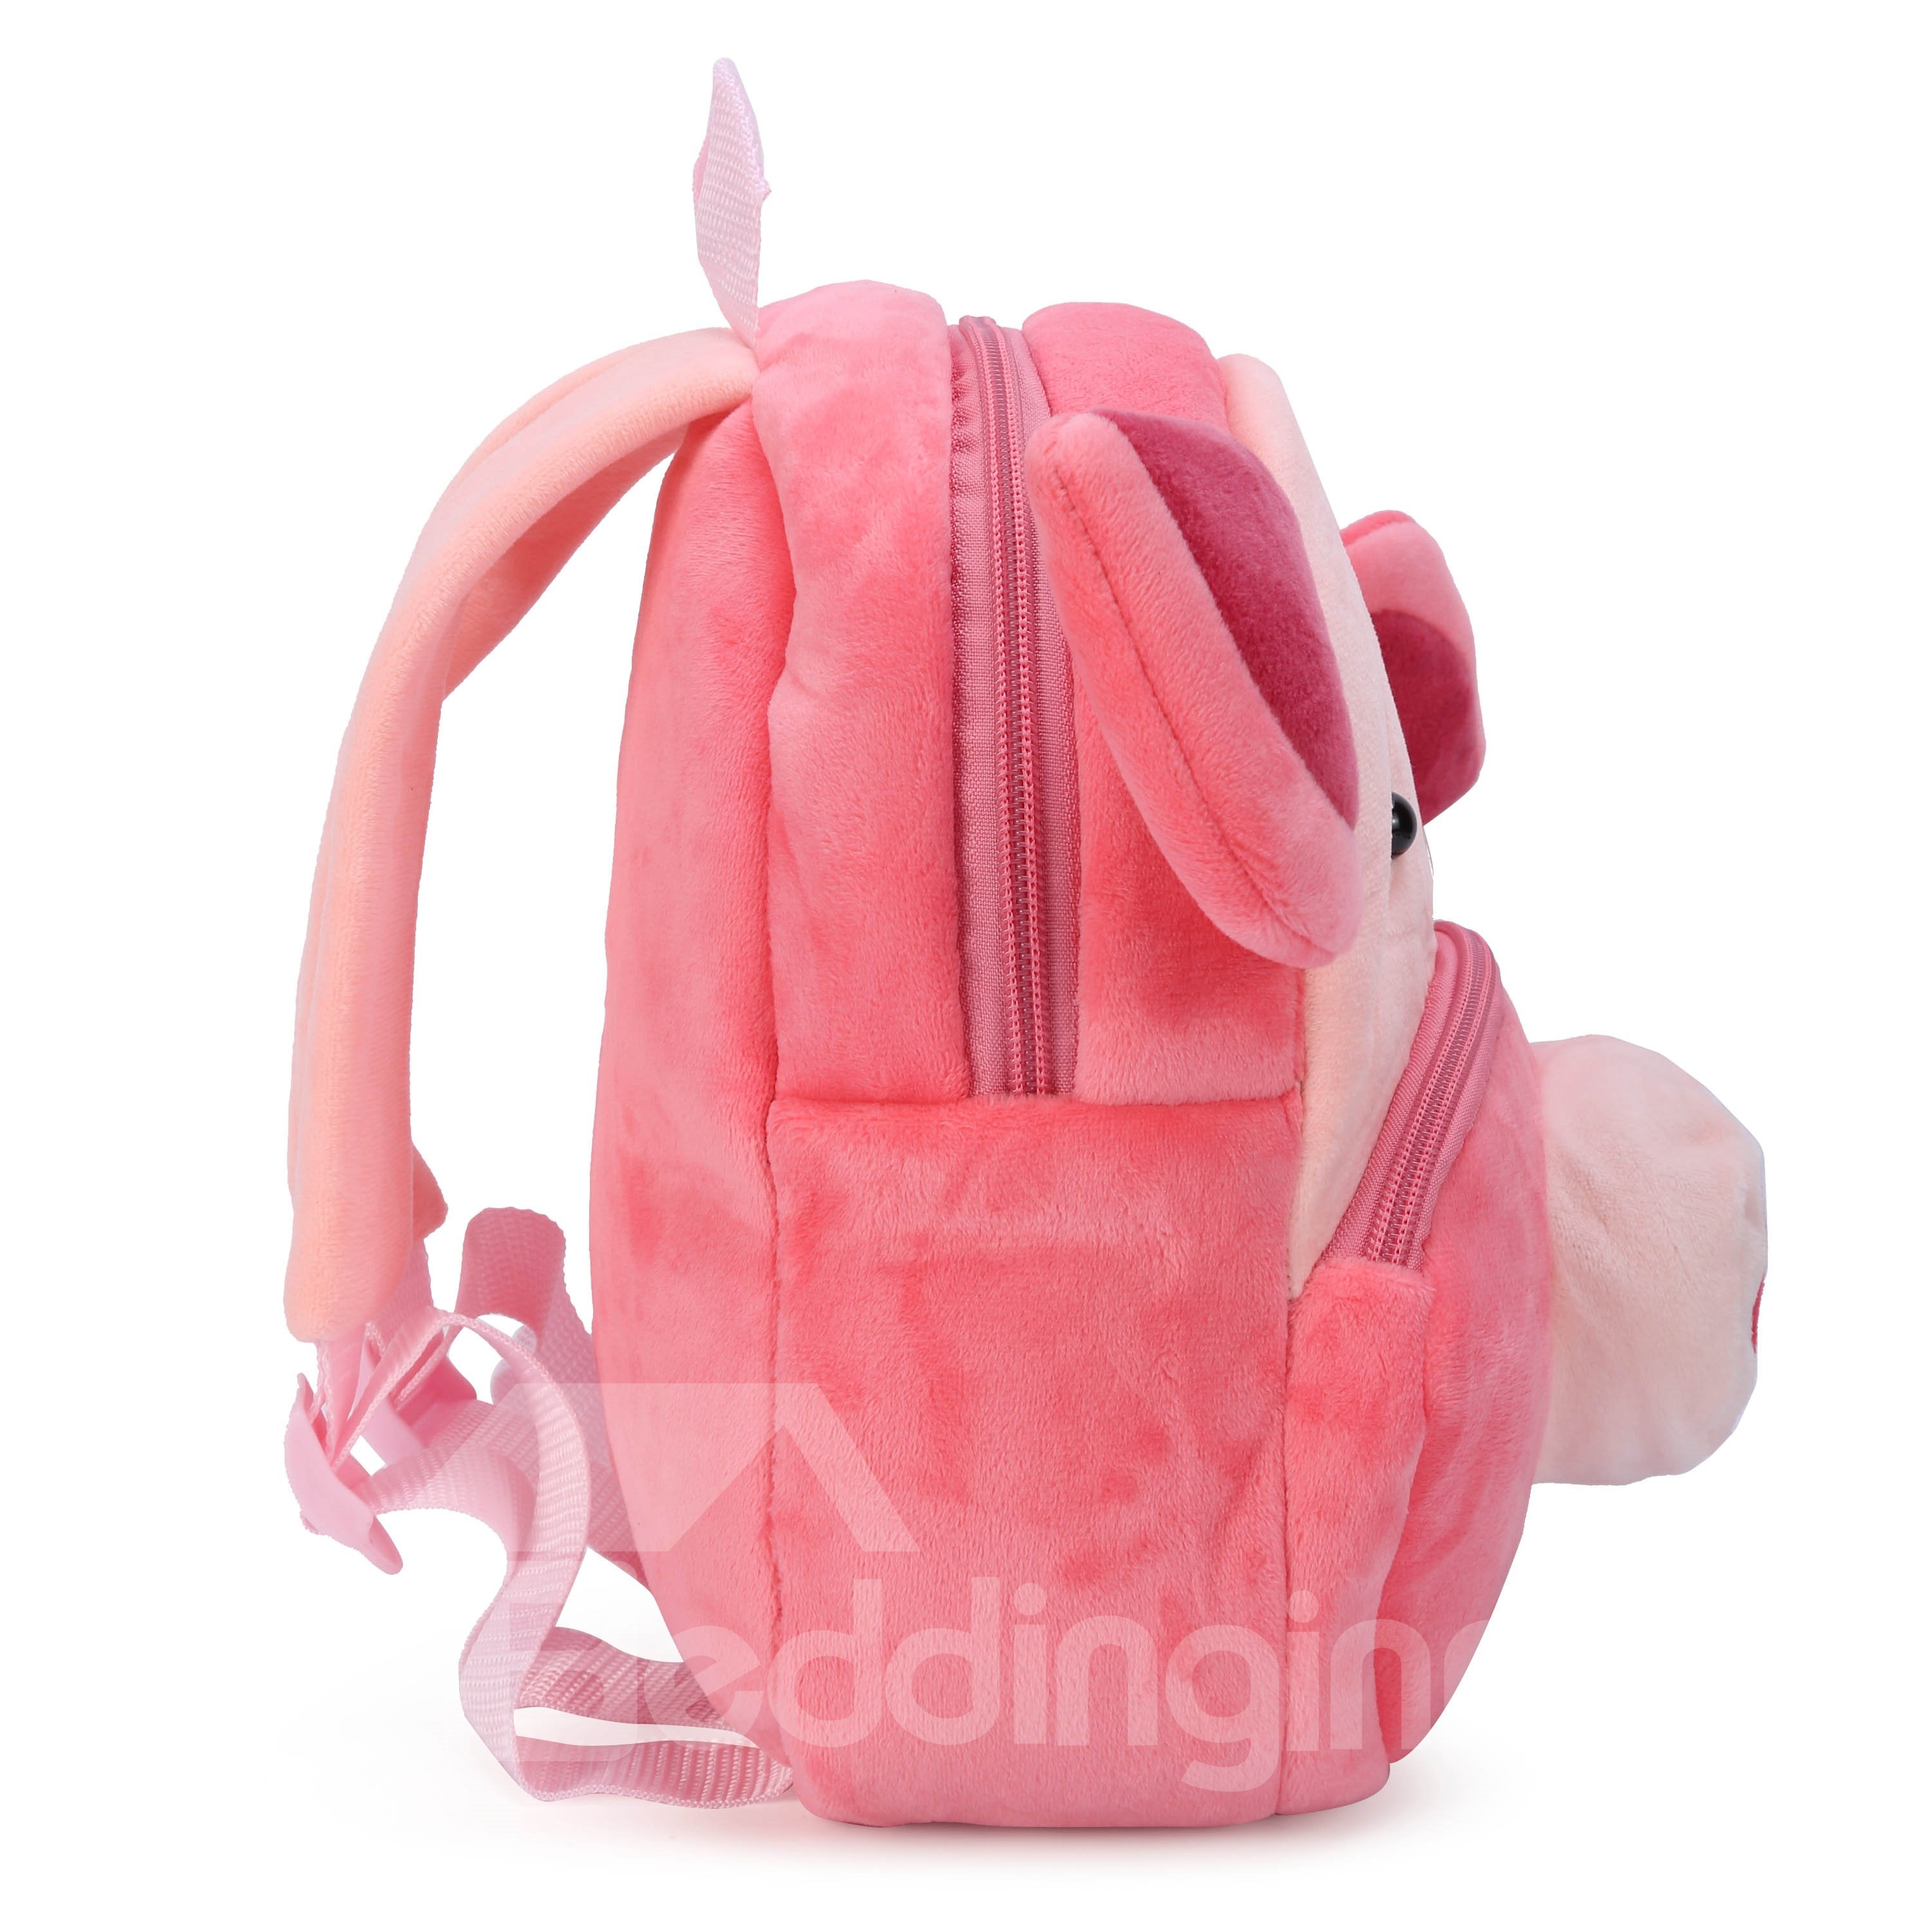 Pig Shaped Plush Pink Cute Kids Backpack